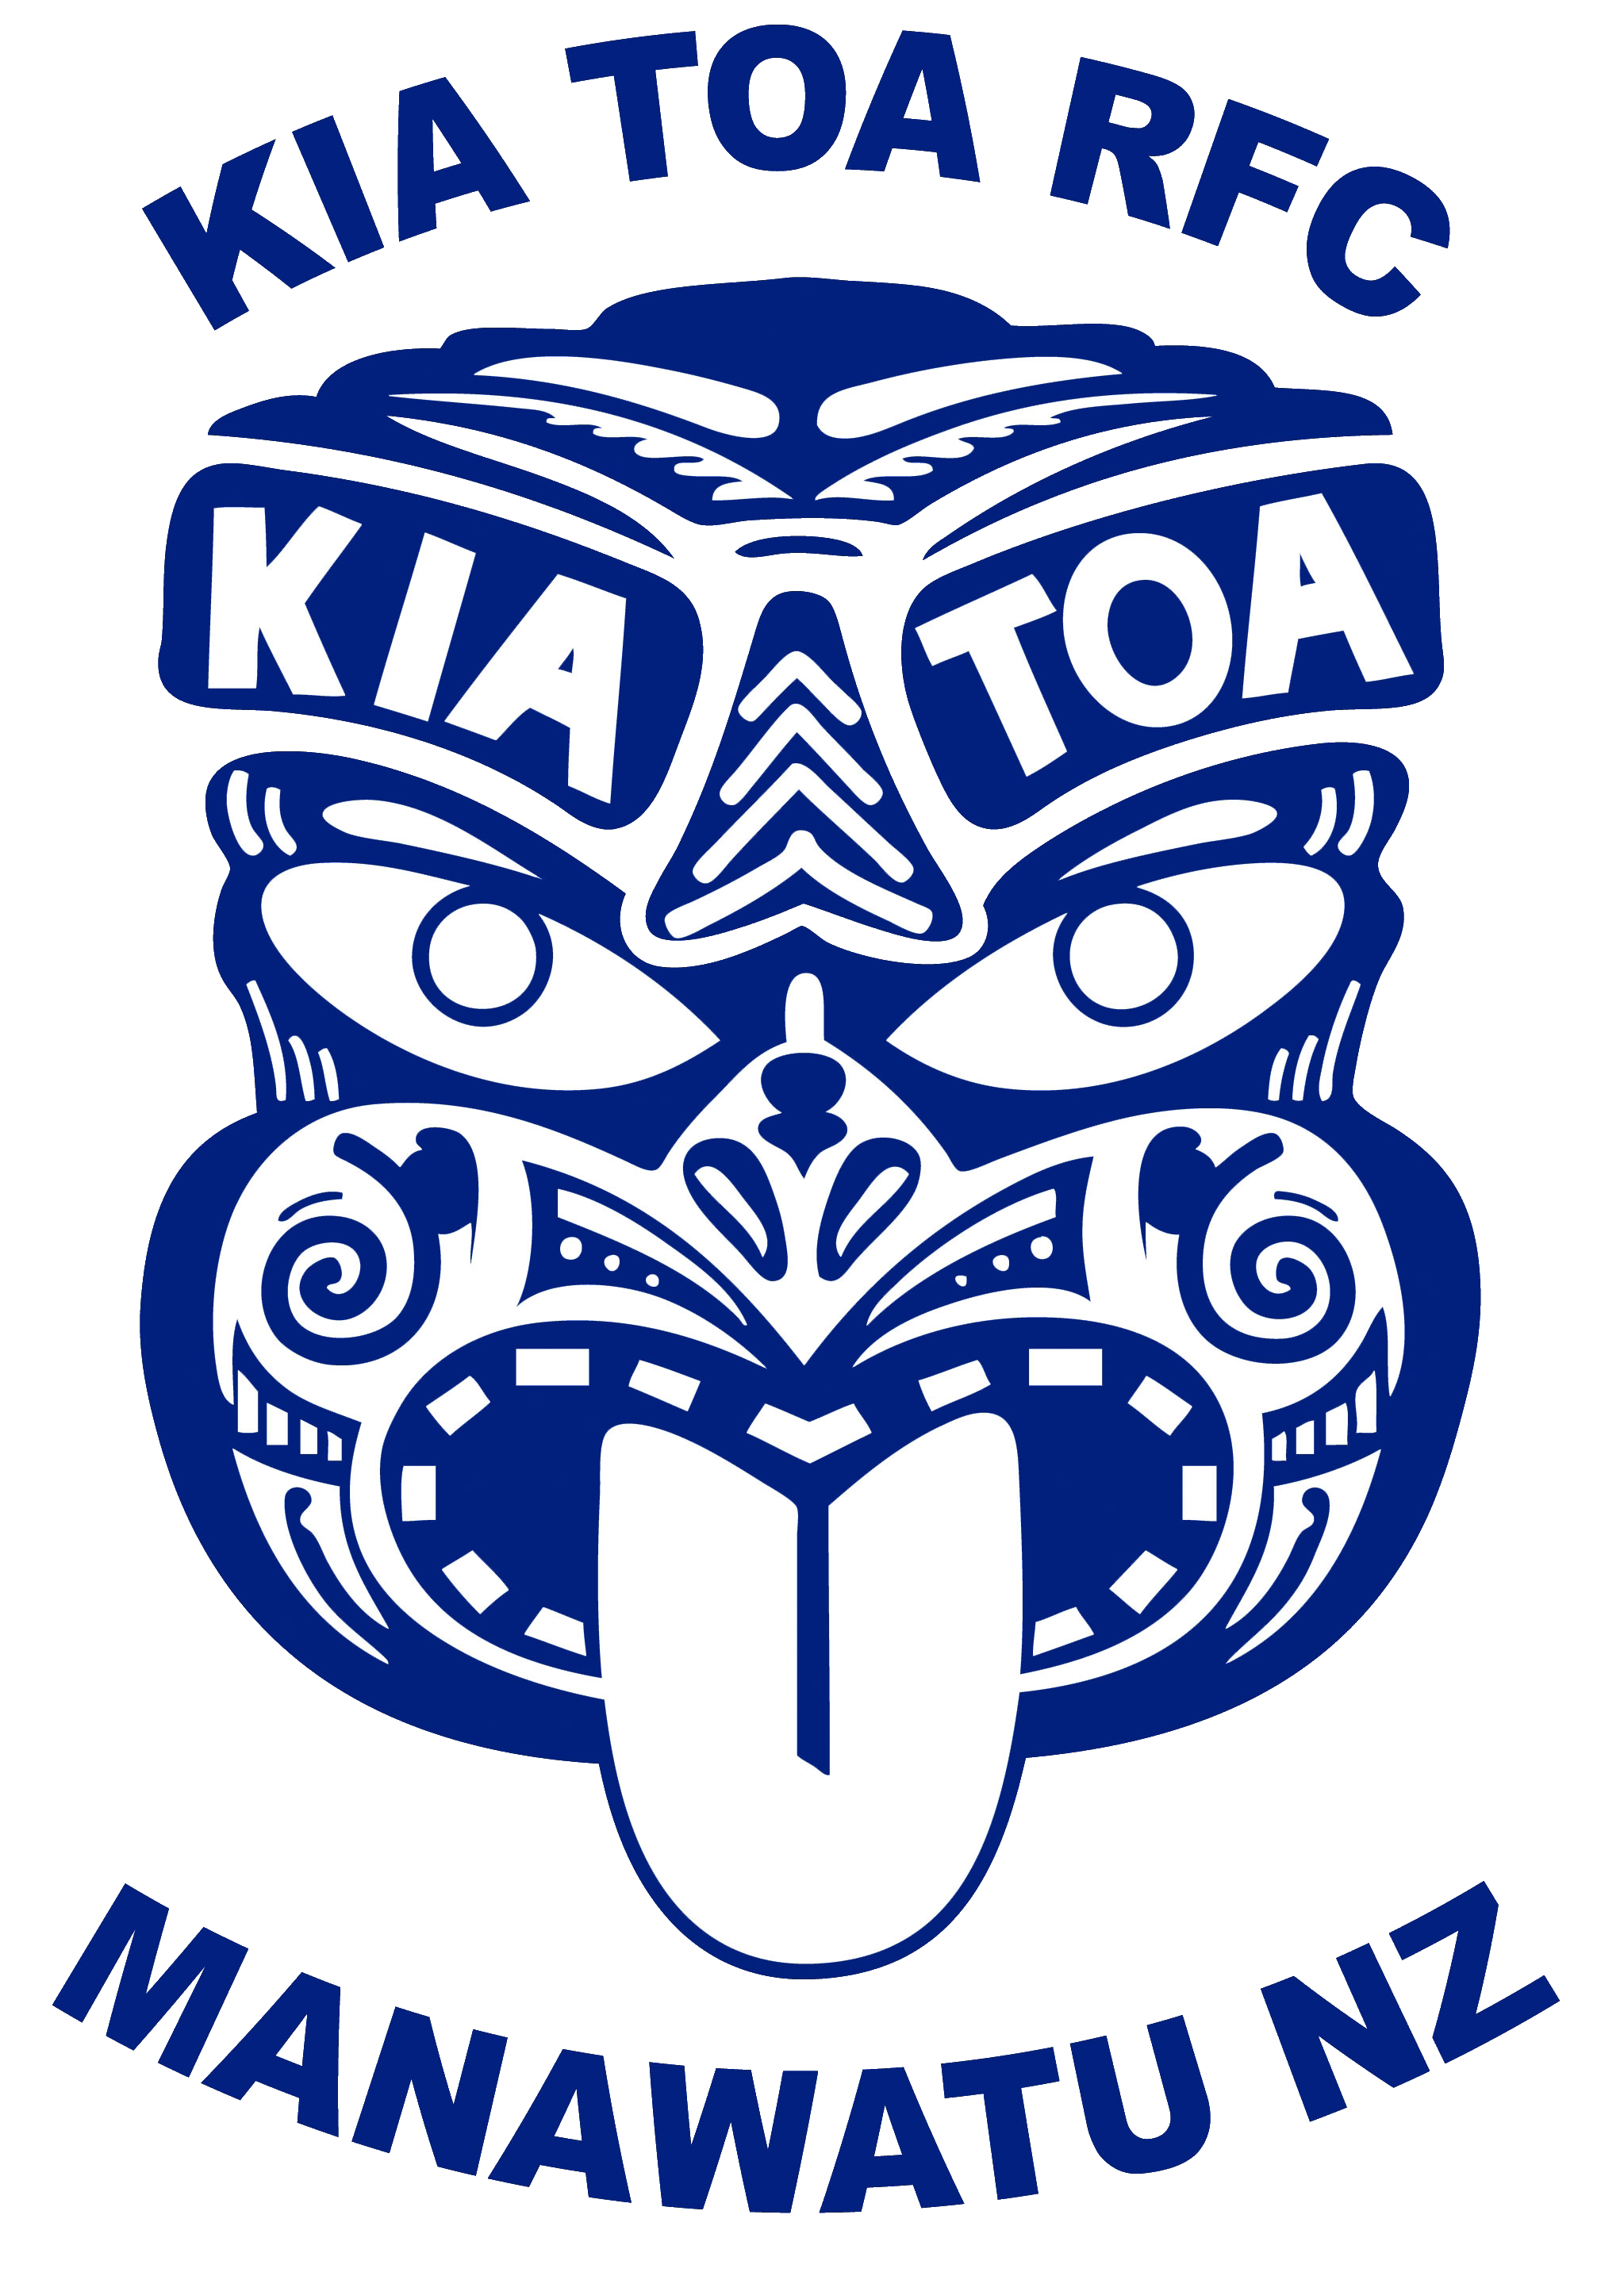 Kia Toa RFC Senior 1 coaching job for 2020